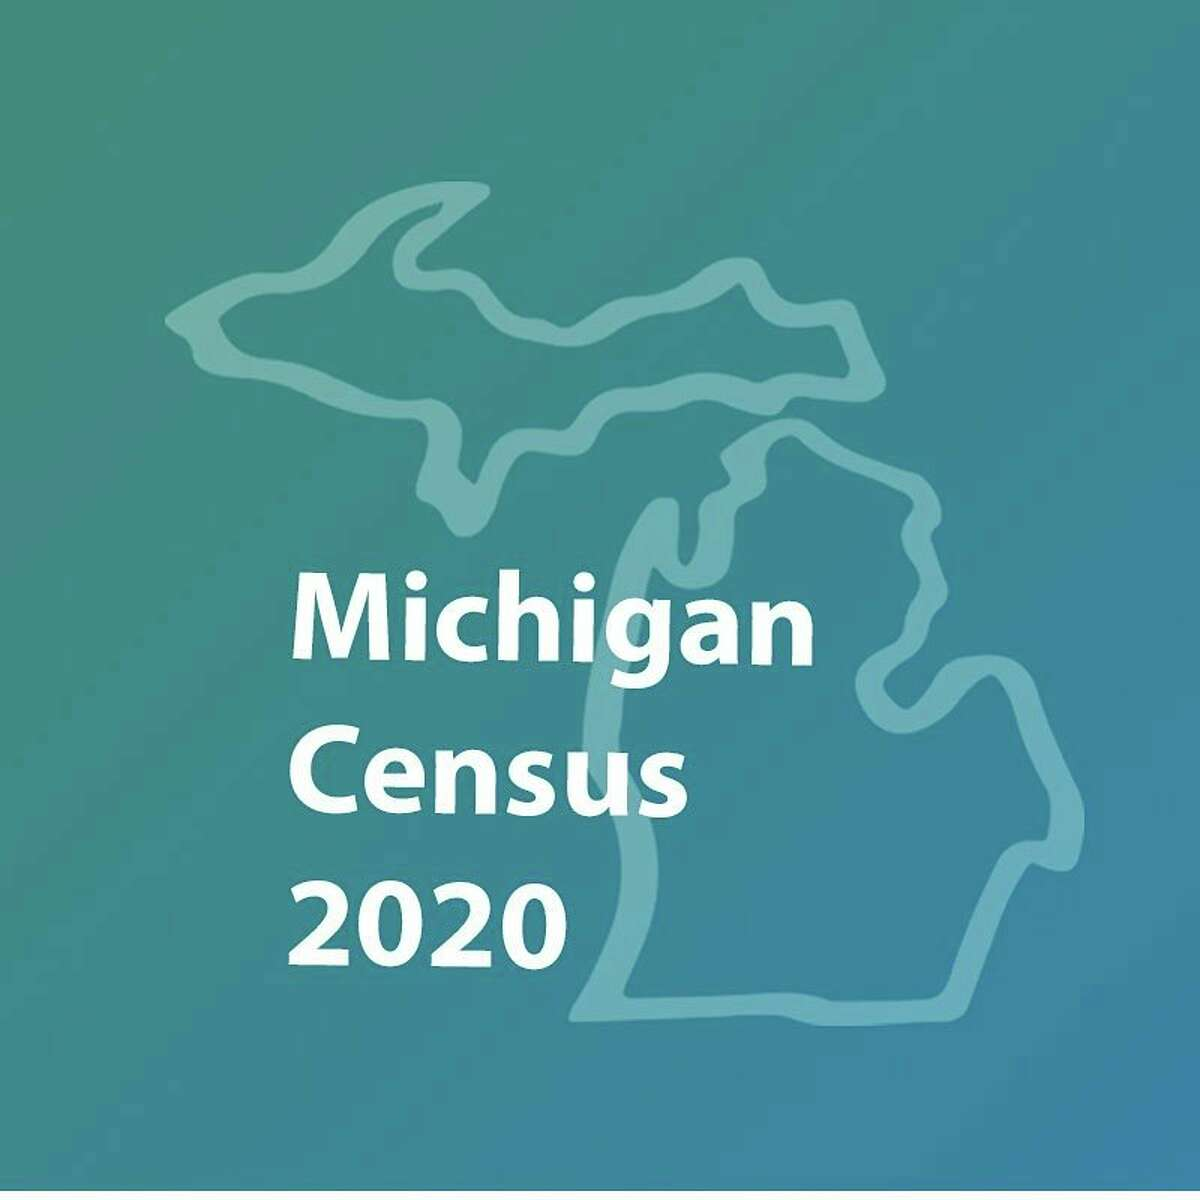 Census takers are now visiting homes to help residents respond to the 2020 census. The deadline for responding has been moved up to Sept. 30. (Photo courtesy of 2020 Census/michigan.gov)